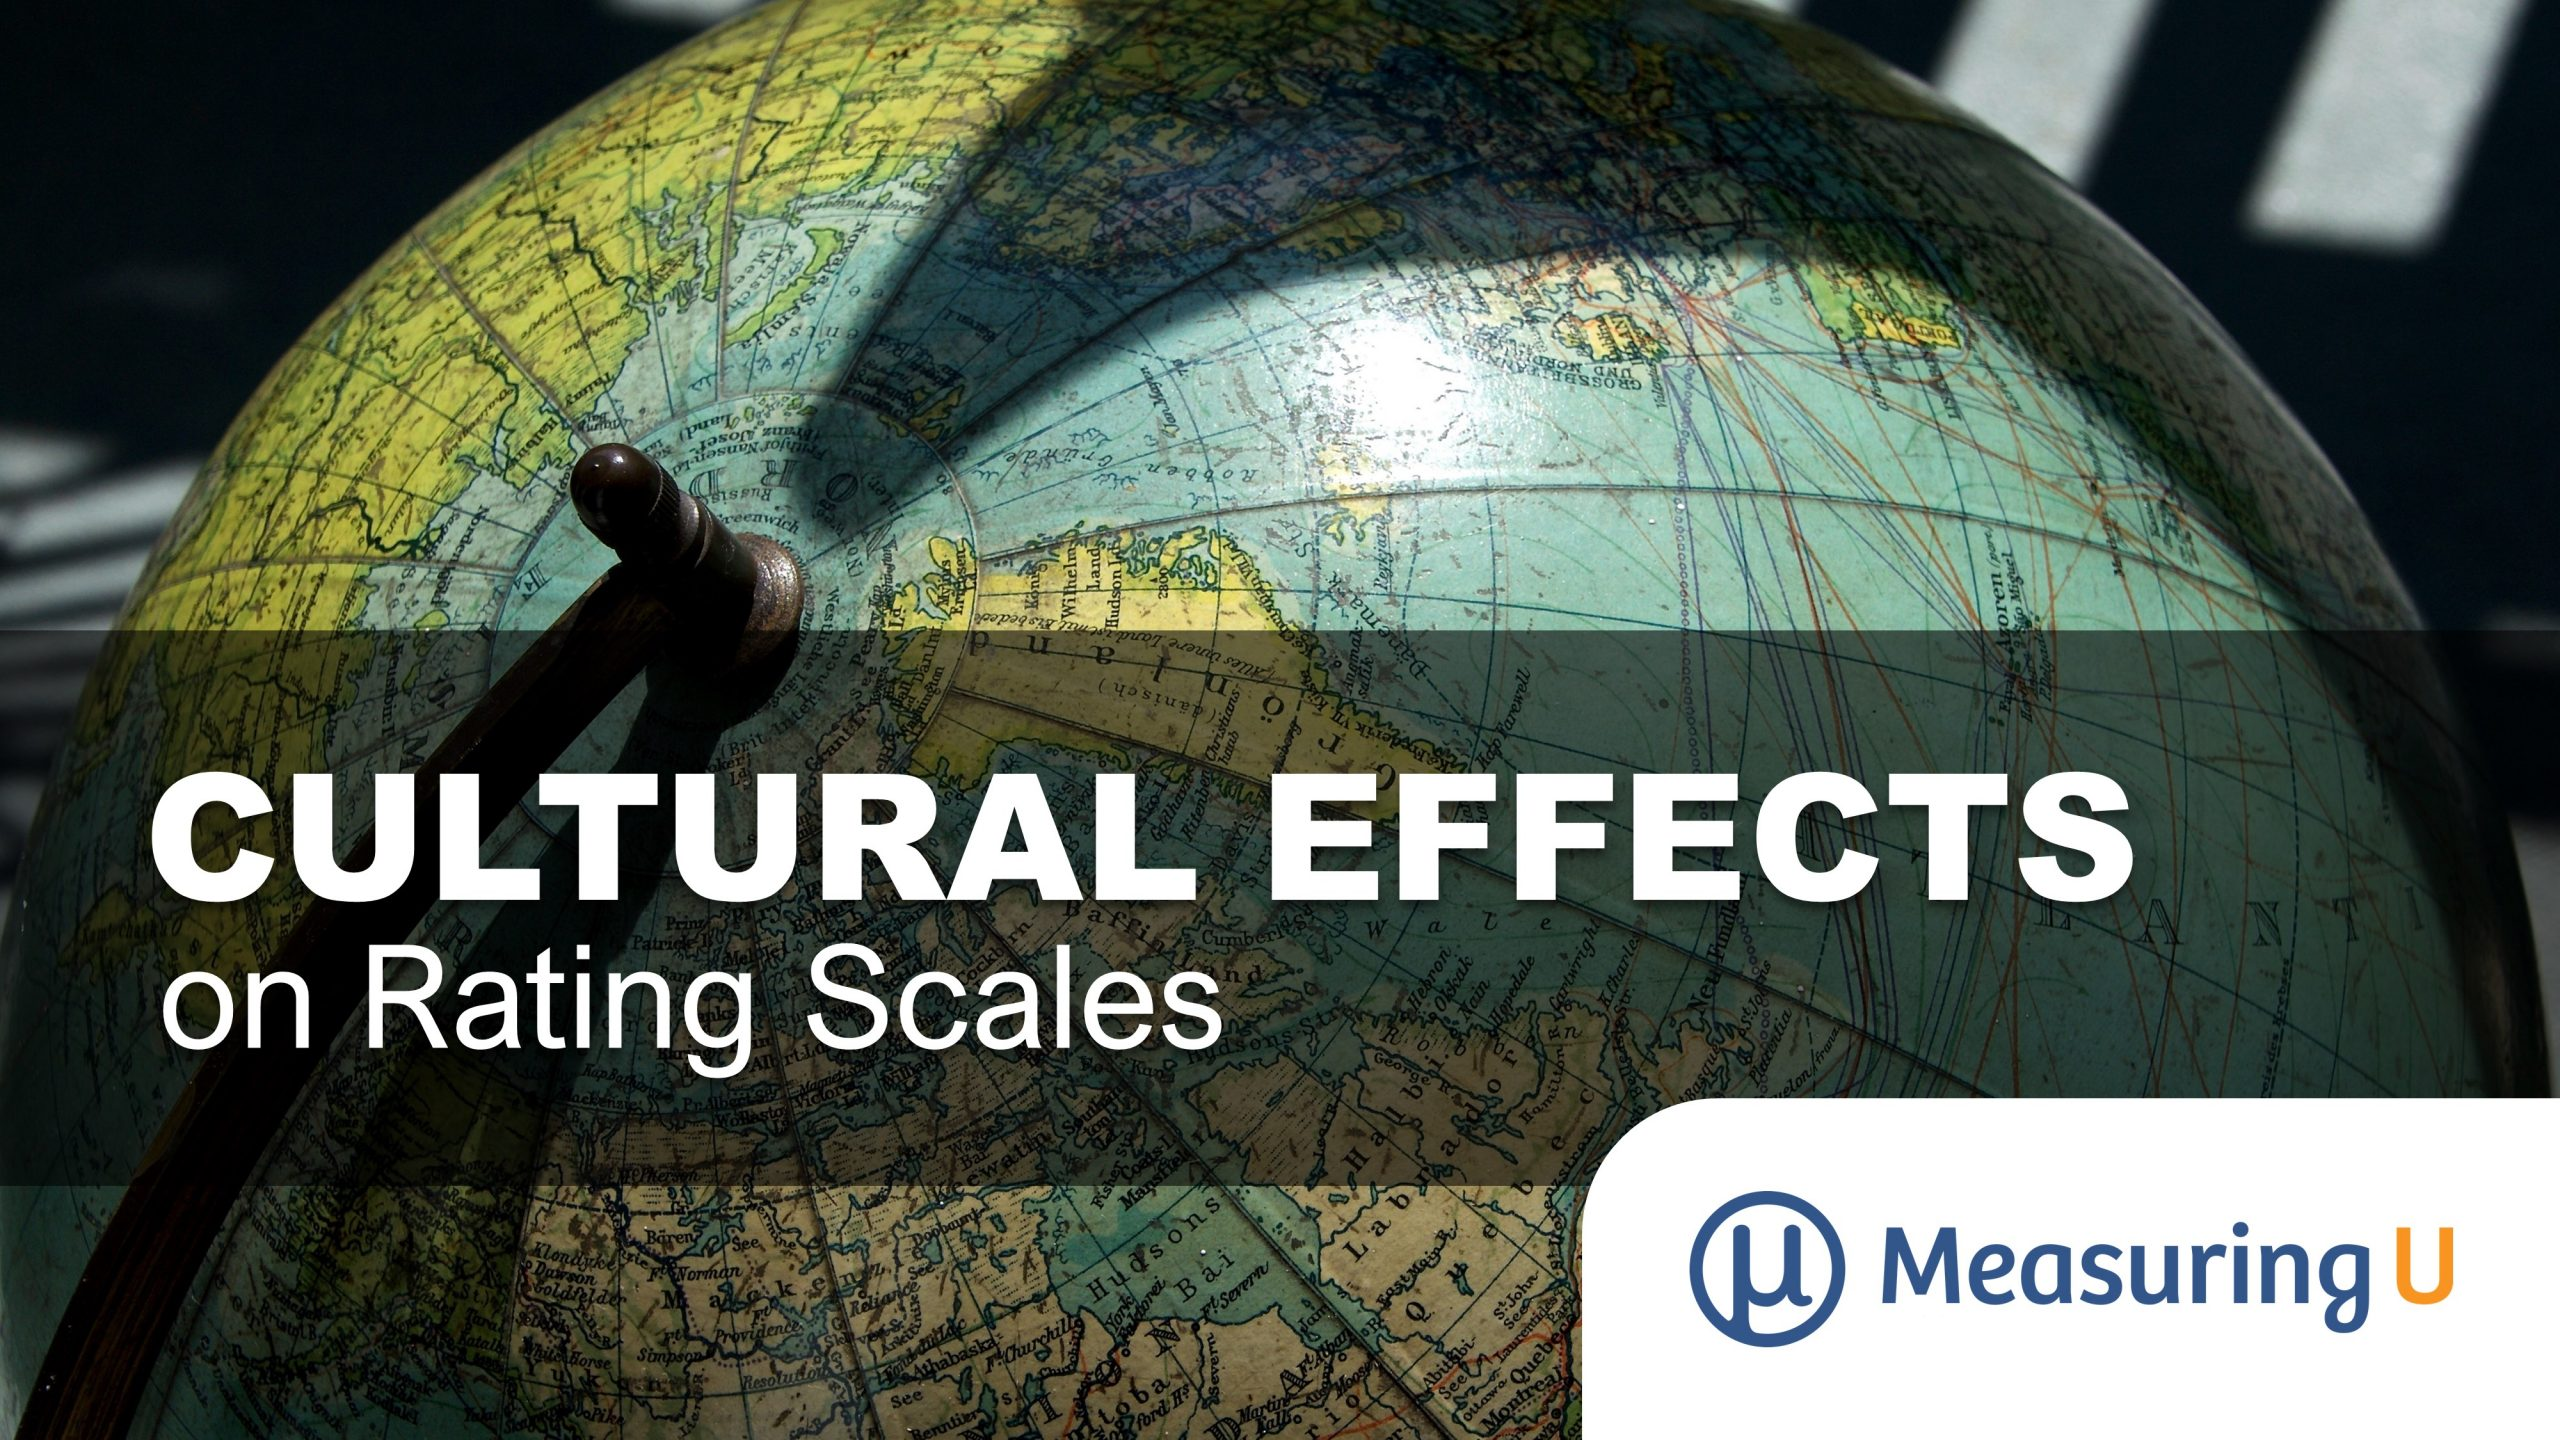 Cultural Effects on Rating Scales